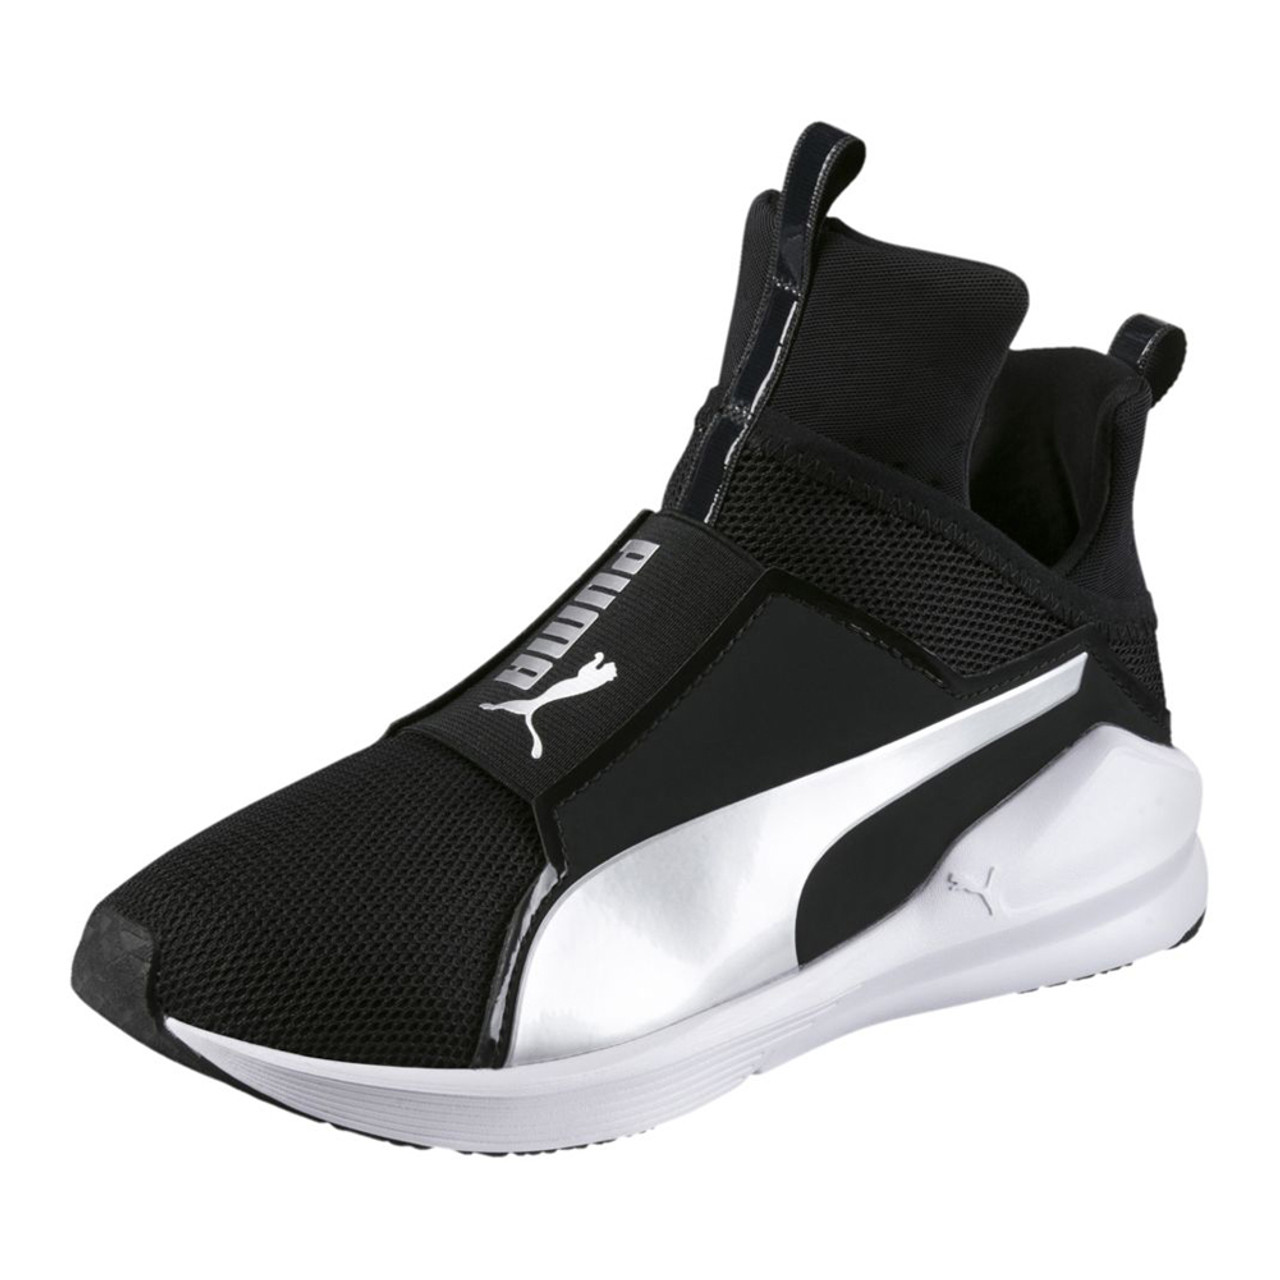 7ca91428924 Puma Women s Fierce Core Cross Trainer Black Silver - Shop now   Shoolu.com